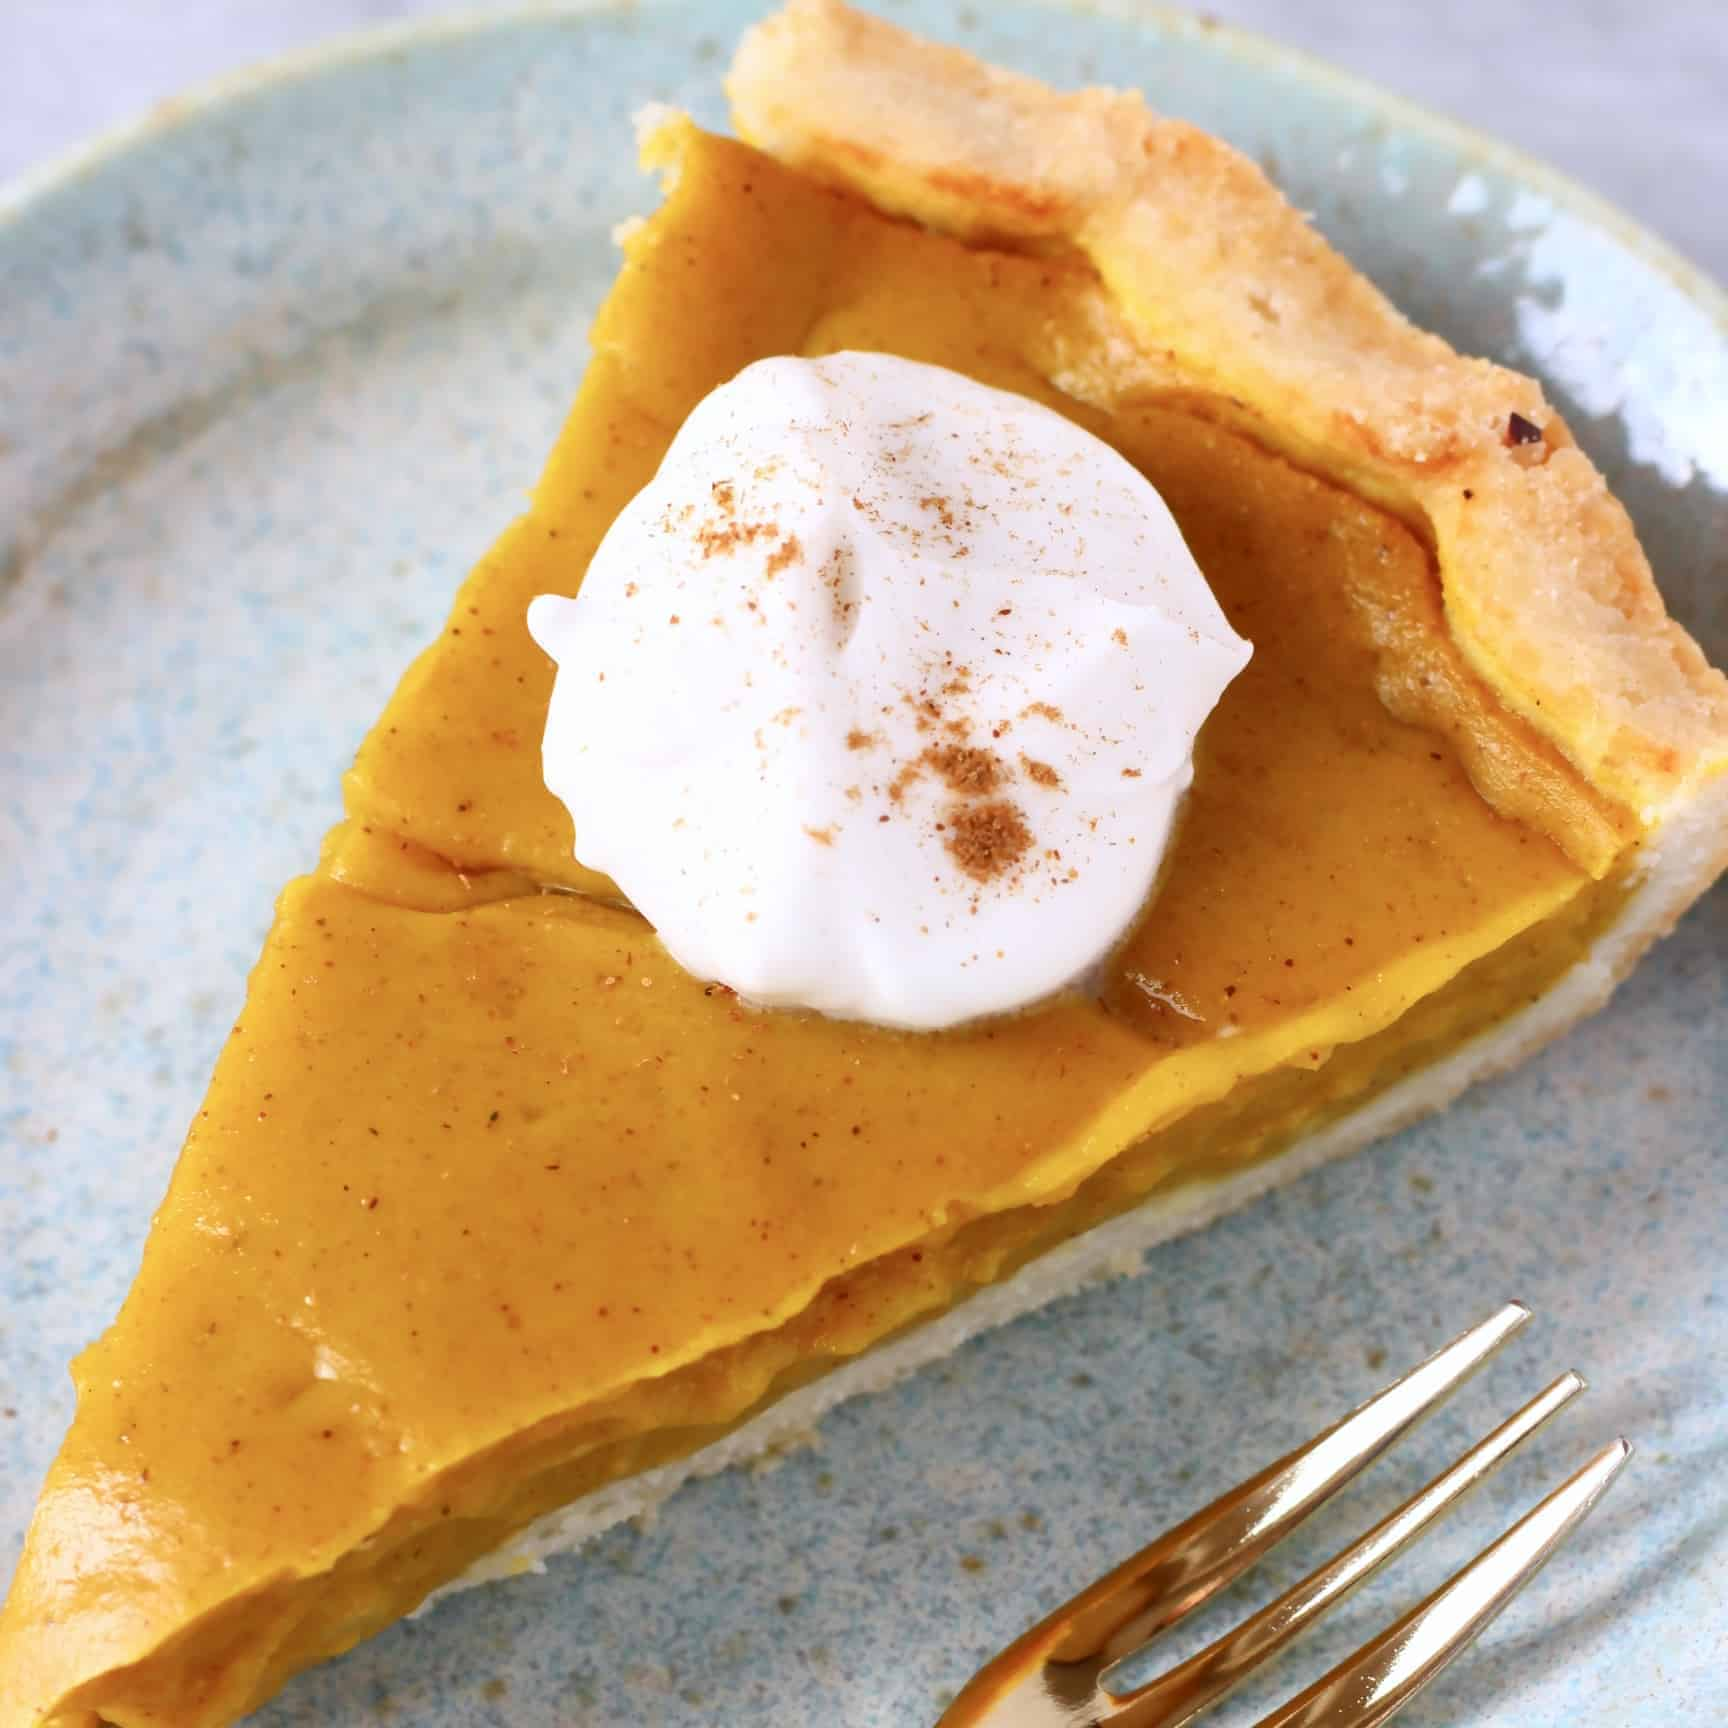 A slice of gluten-free vegan pumpkin pie topped with cream on a plate with a fork